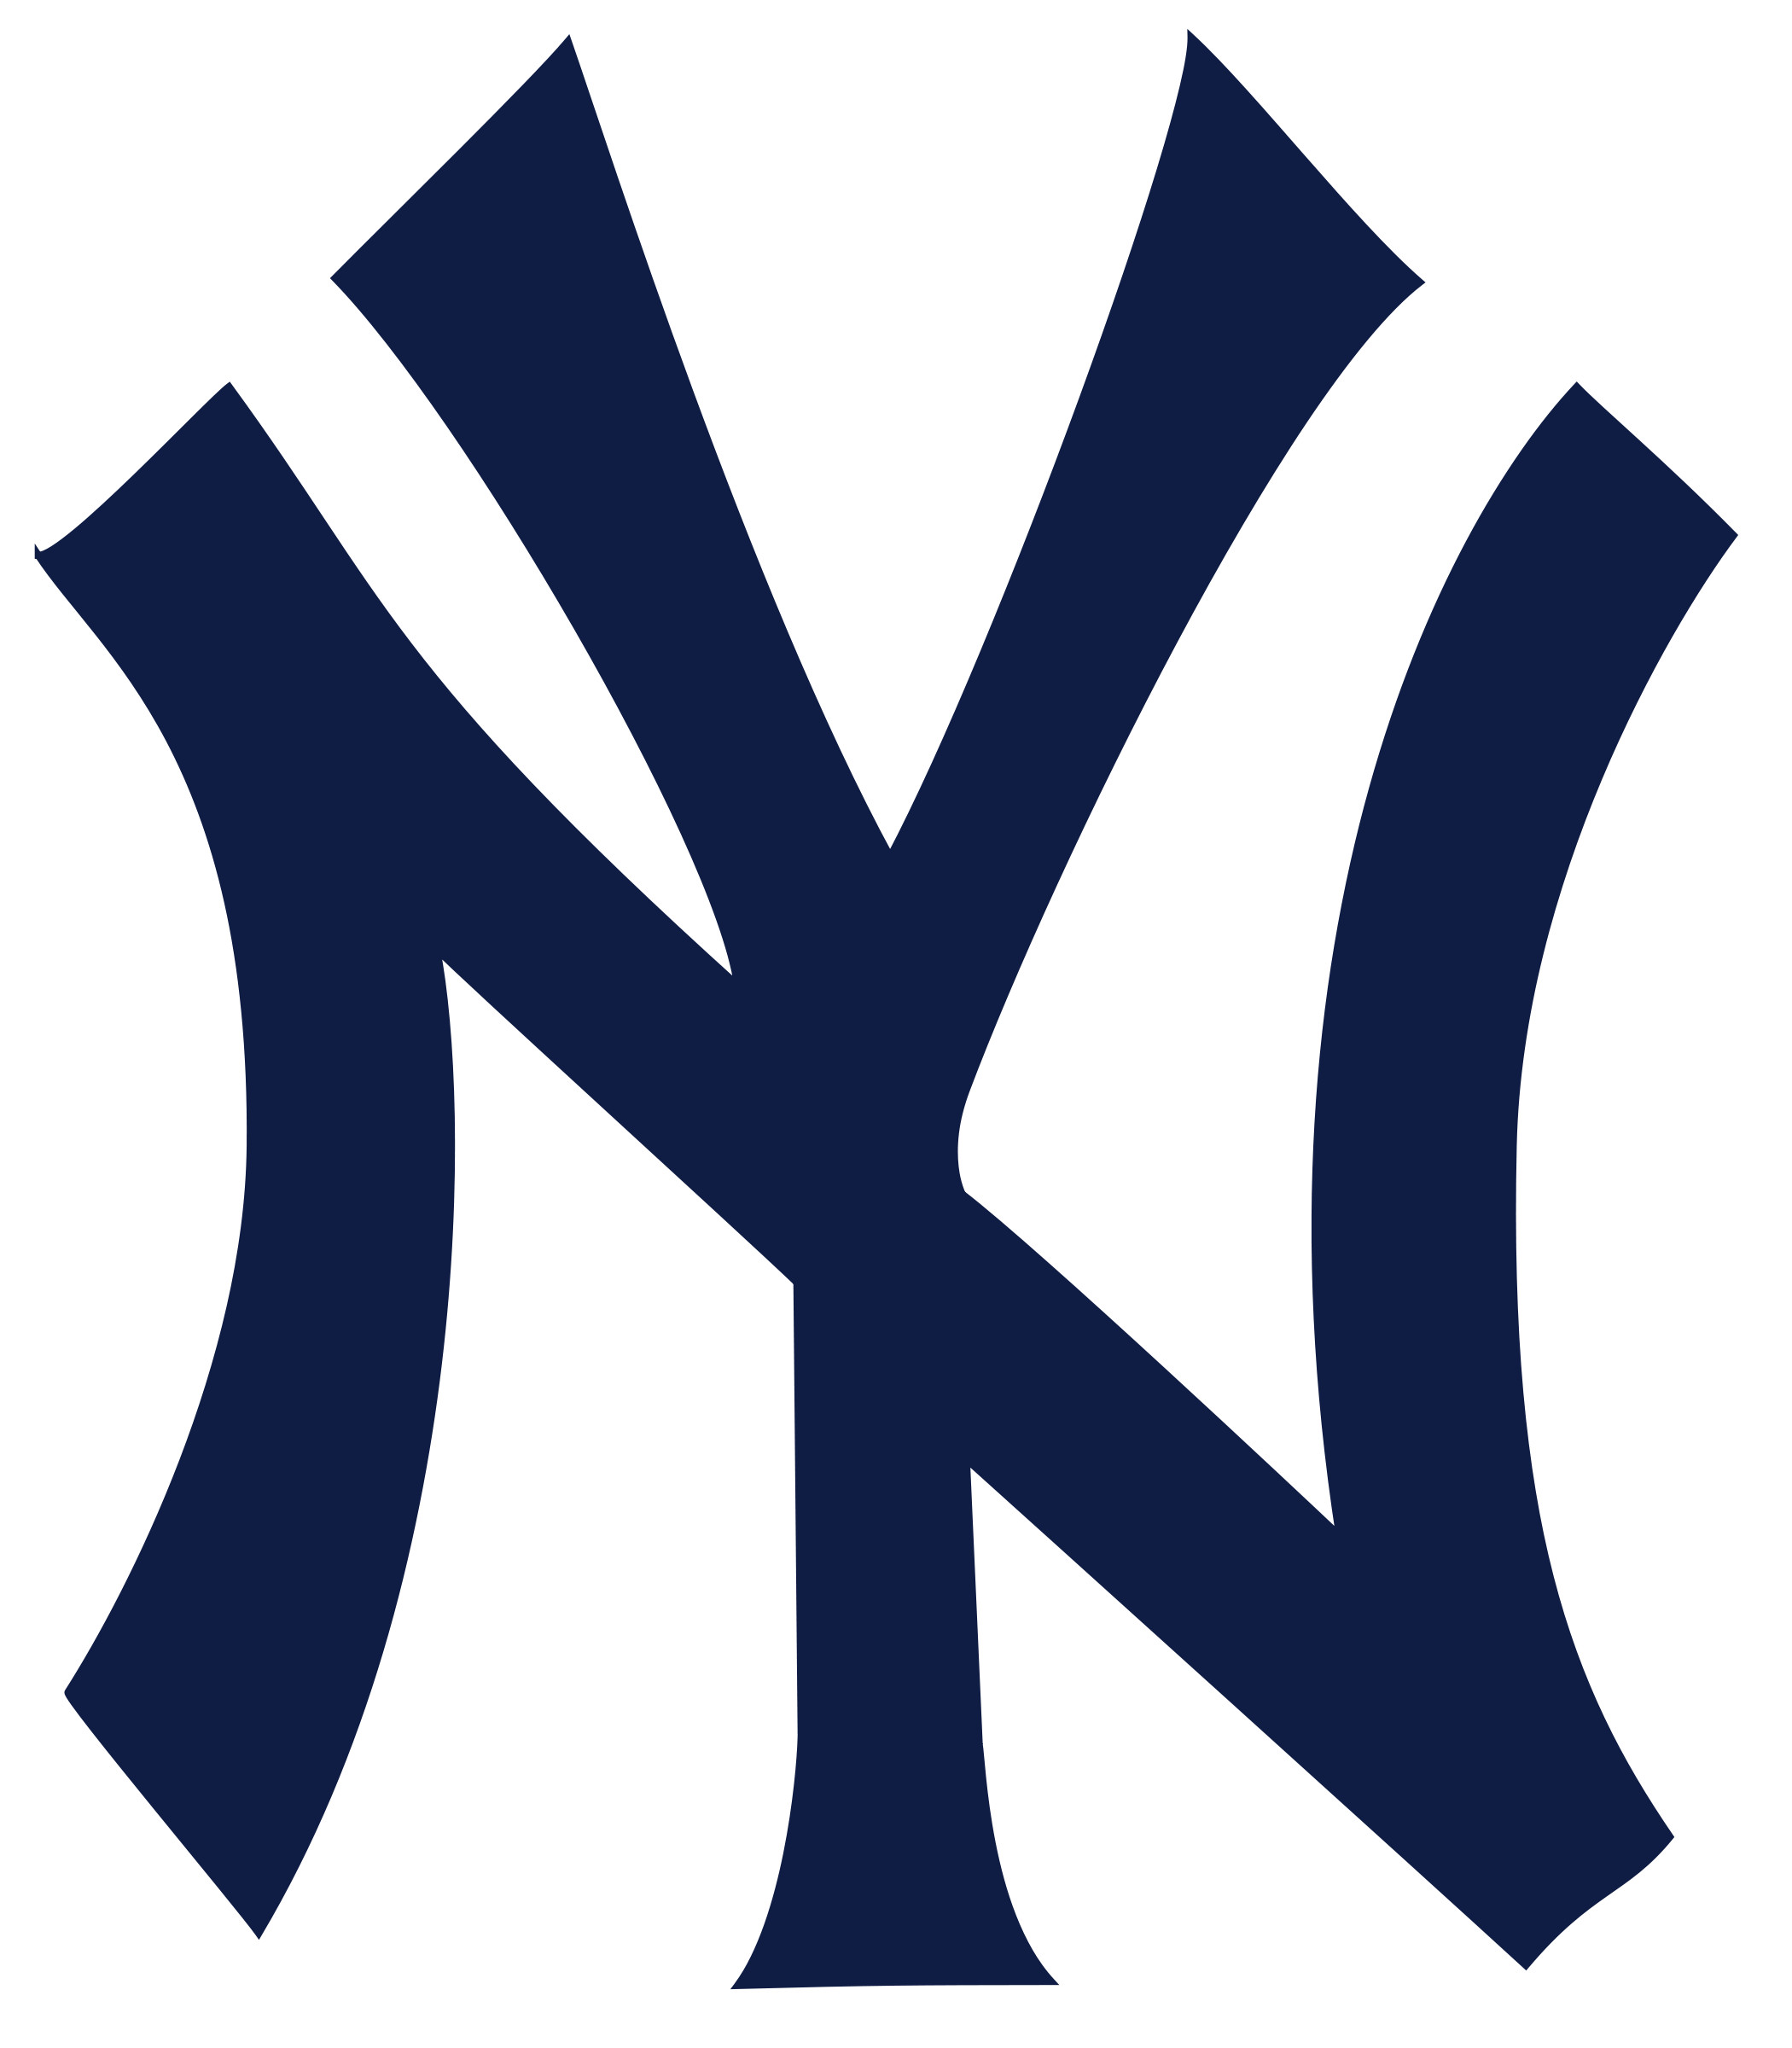 Res: 2100x2400, New York Yankees wallpaper, full size is 1920x1200px, widescreen: